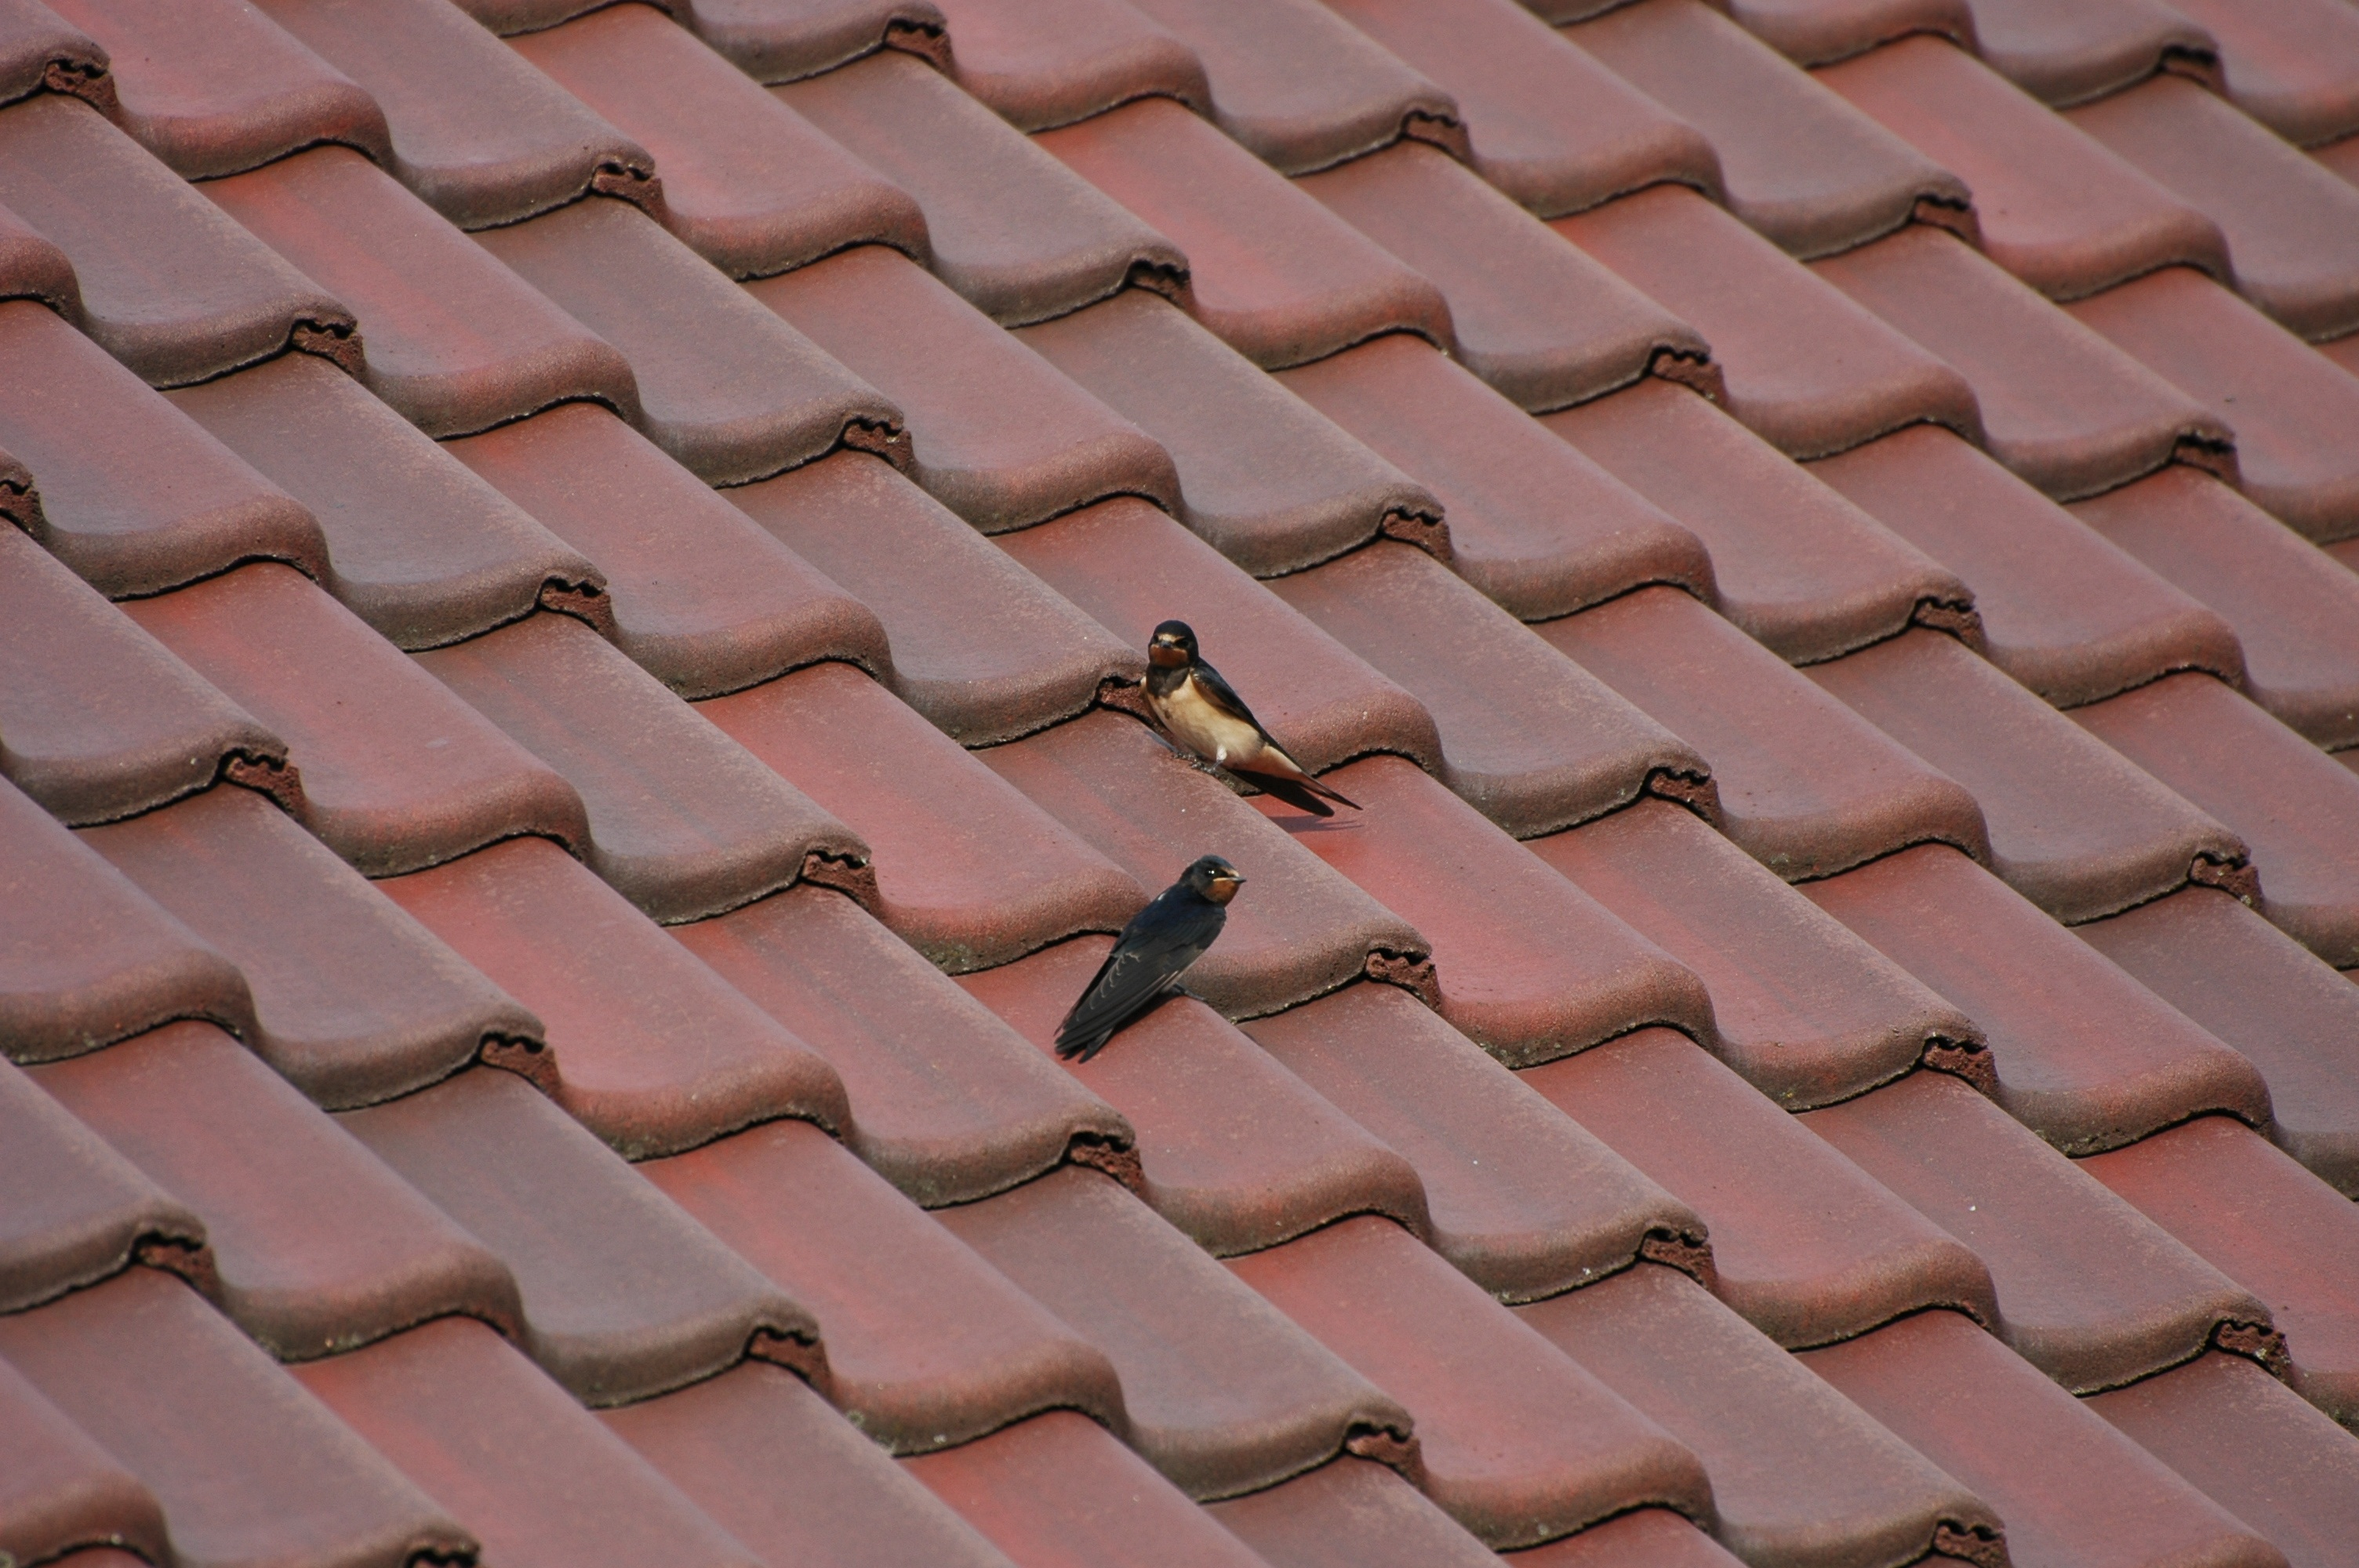 Birds on a roof